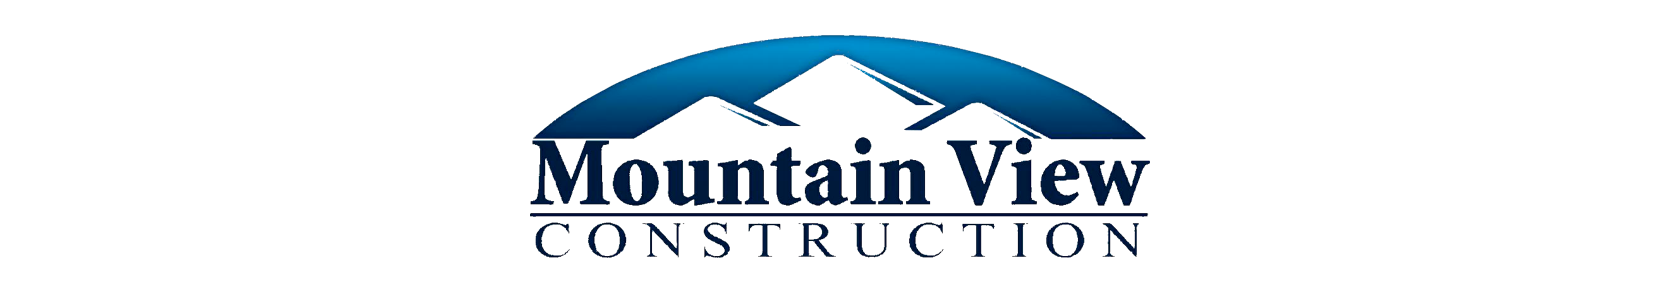 Mountain View Construction Supply